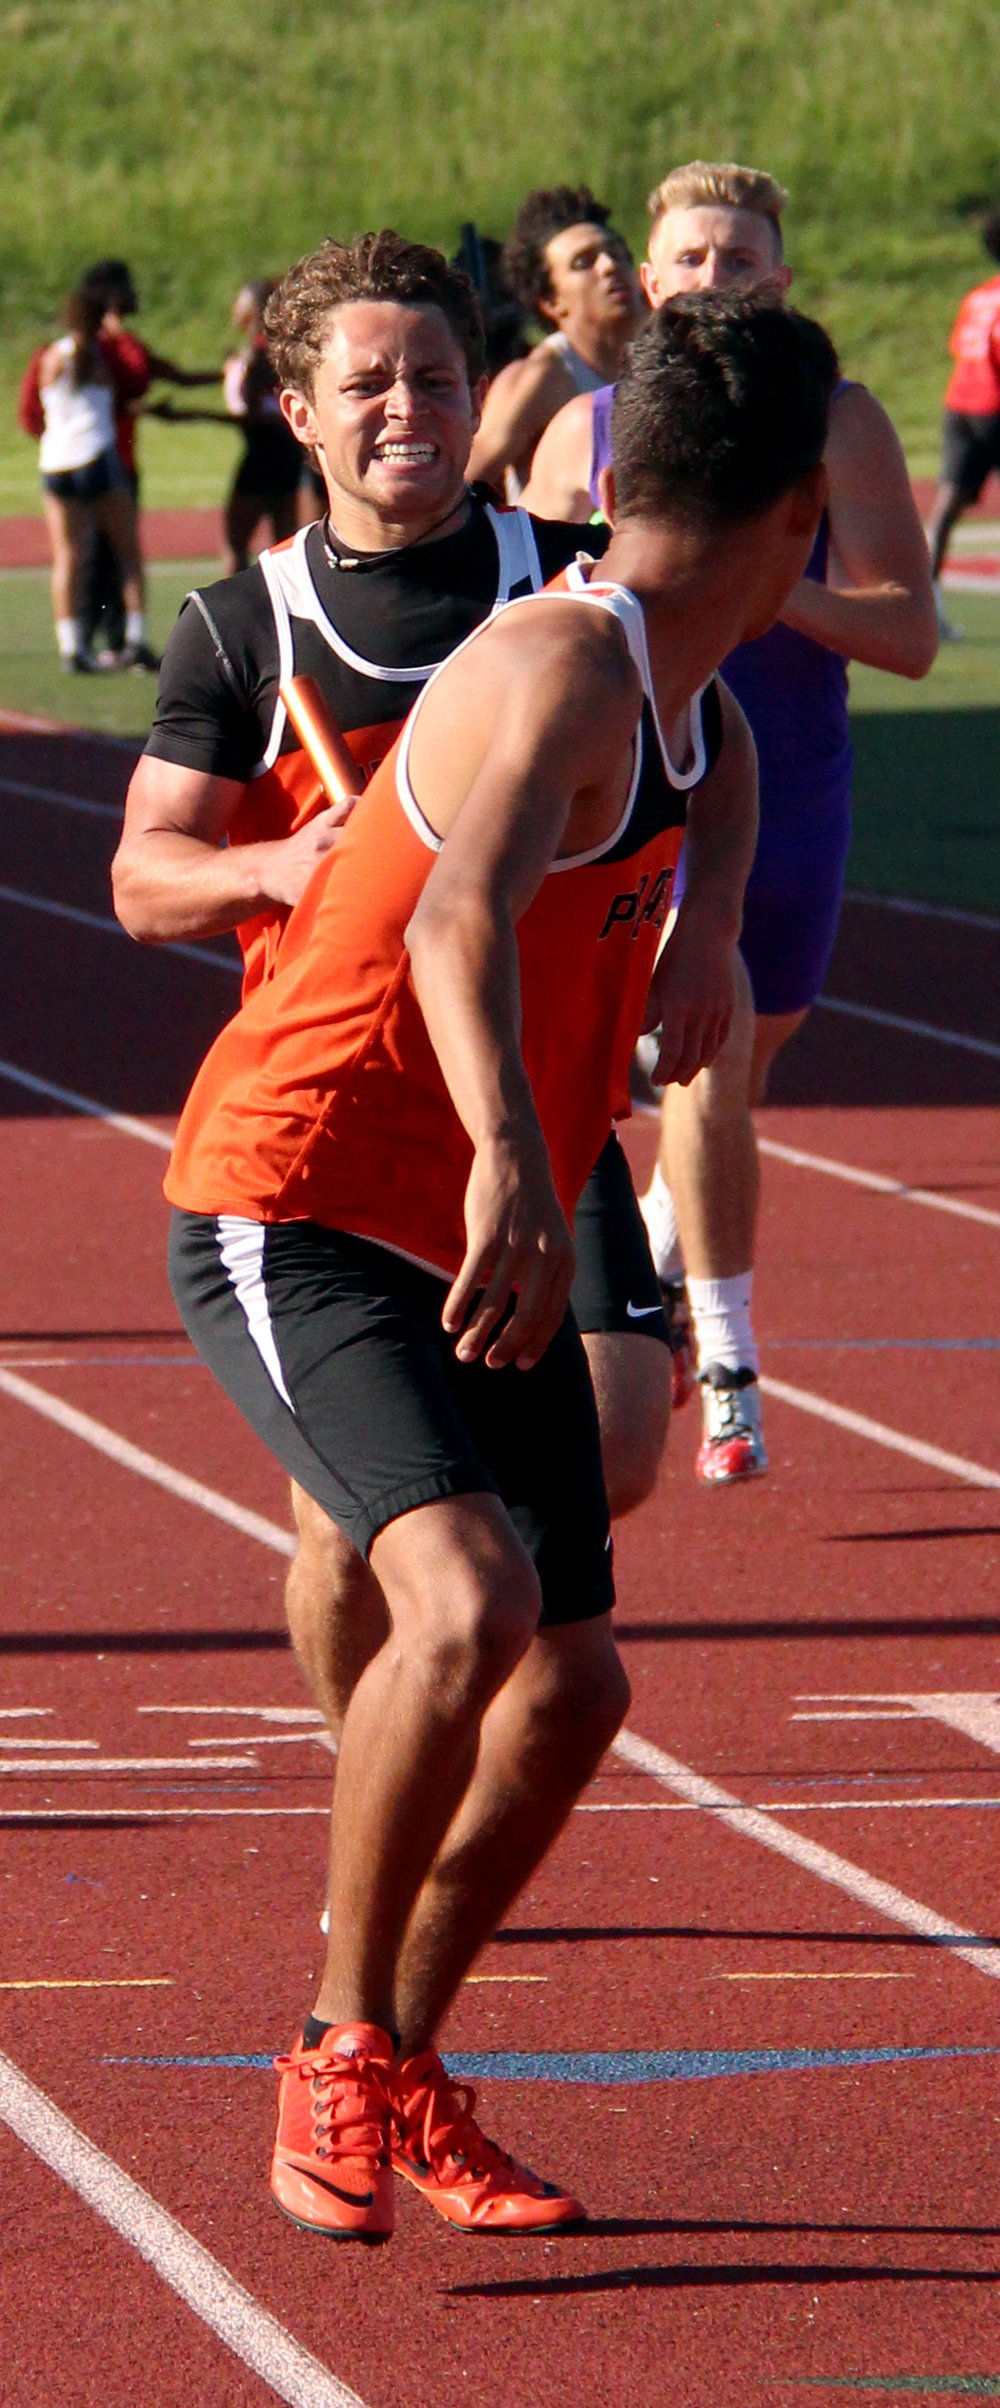 ROSS MARTIN/Citizen photo Platte County senior TJ Guillory, rear, hands the baton to junior Matthew Phillips in the 4x400 relay Saturday, May 13 during the Class 4 District 8 meet at Park Hill District Stadium in Kansas City, Mo. Matthew Phillips, a junior at right, is closing the gap to finish second.